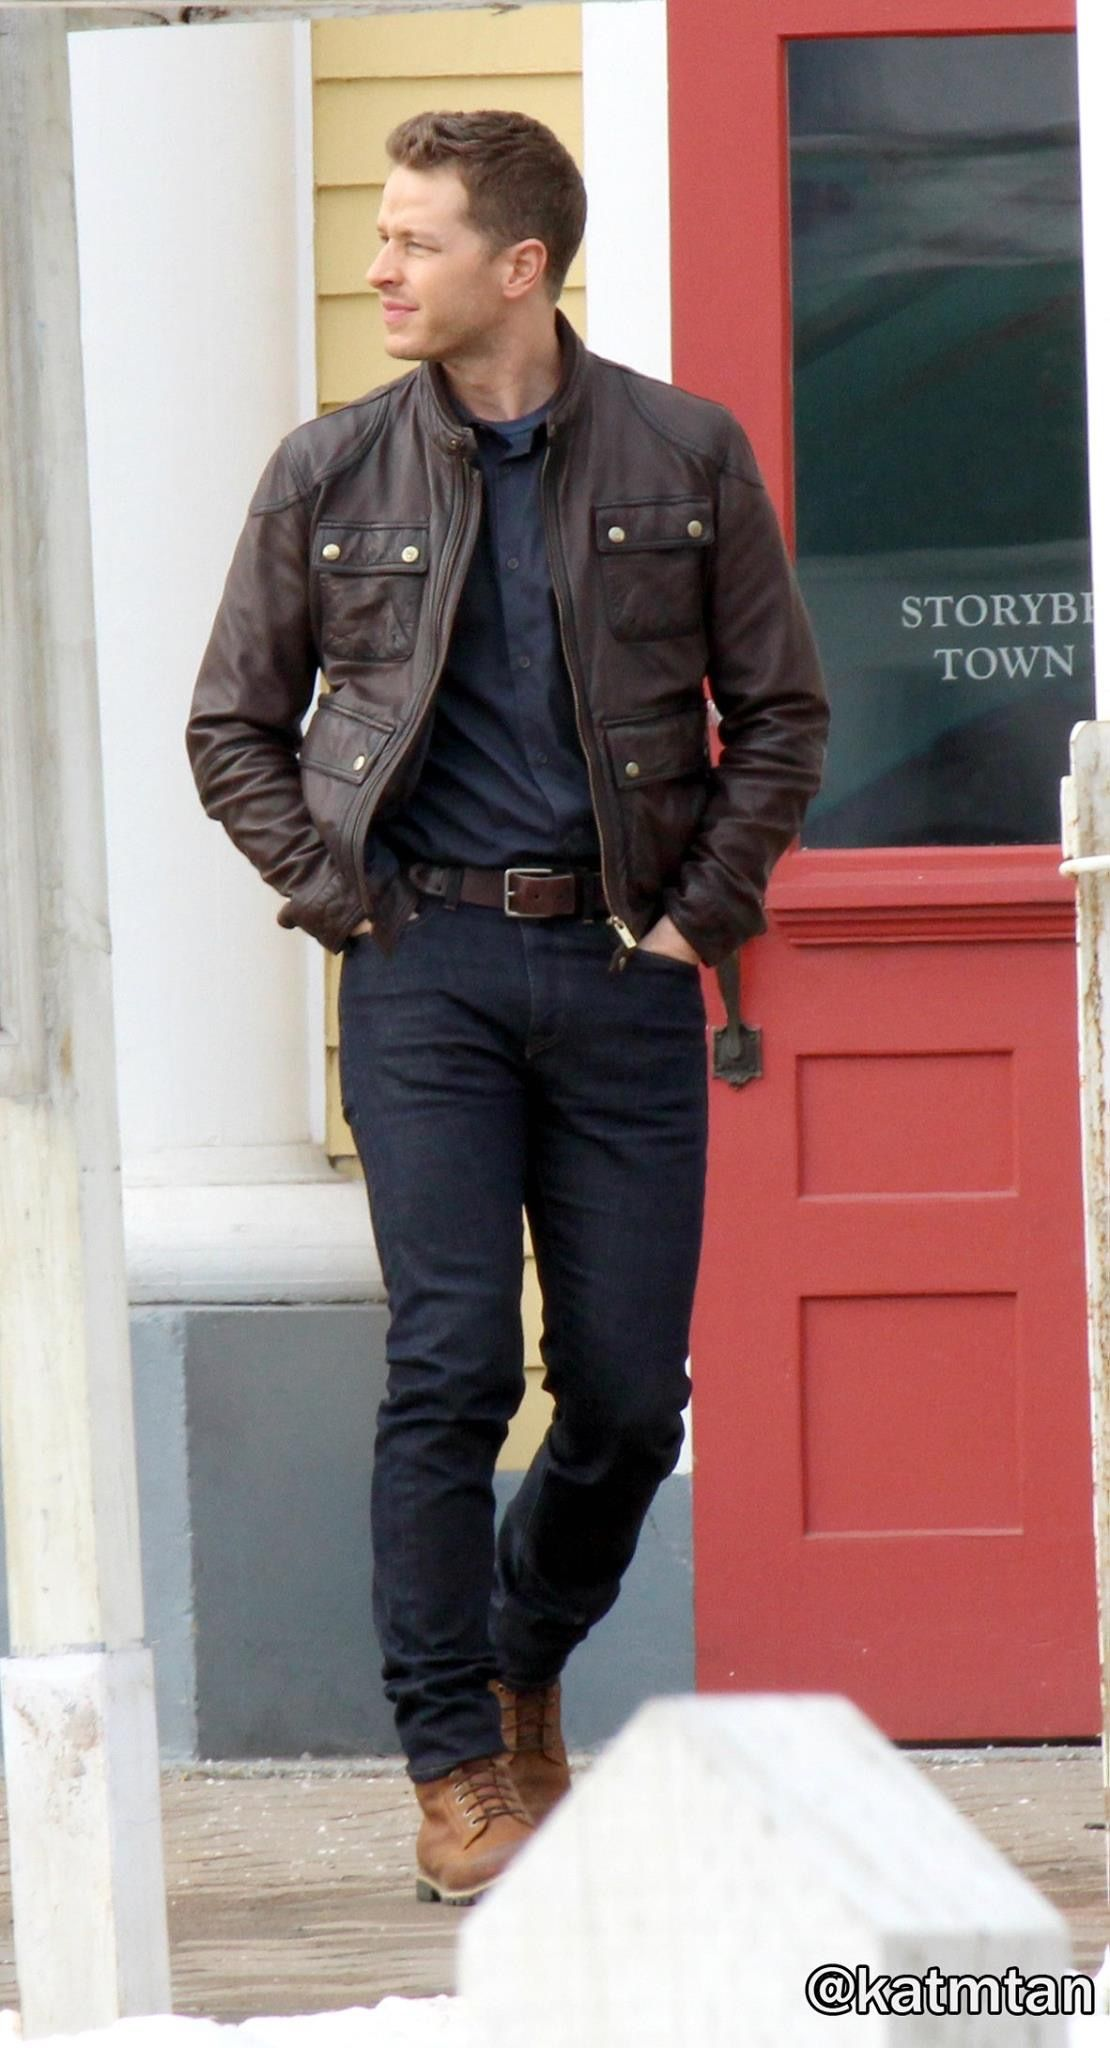 Pin By Tammy Sekuterski On Once Upon A Time Bomber Jacket Leather Jacket Fashion [ 2048 x 1110 Pixel ]